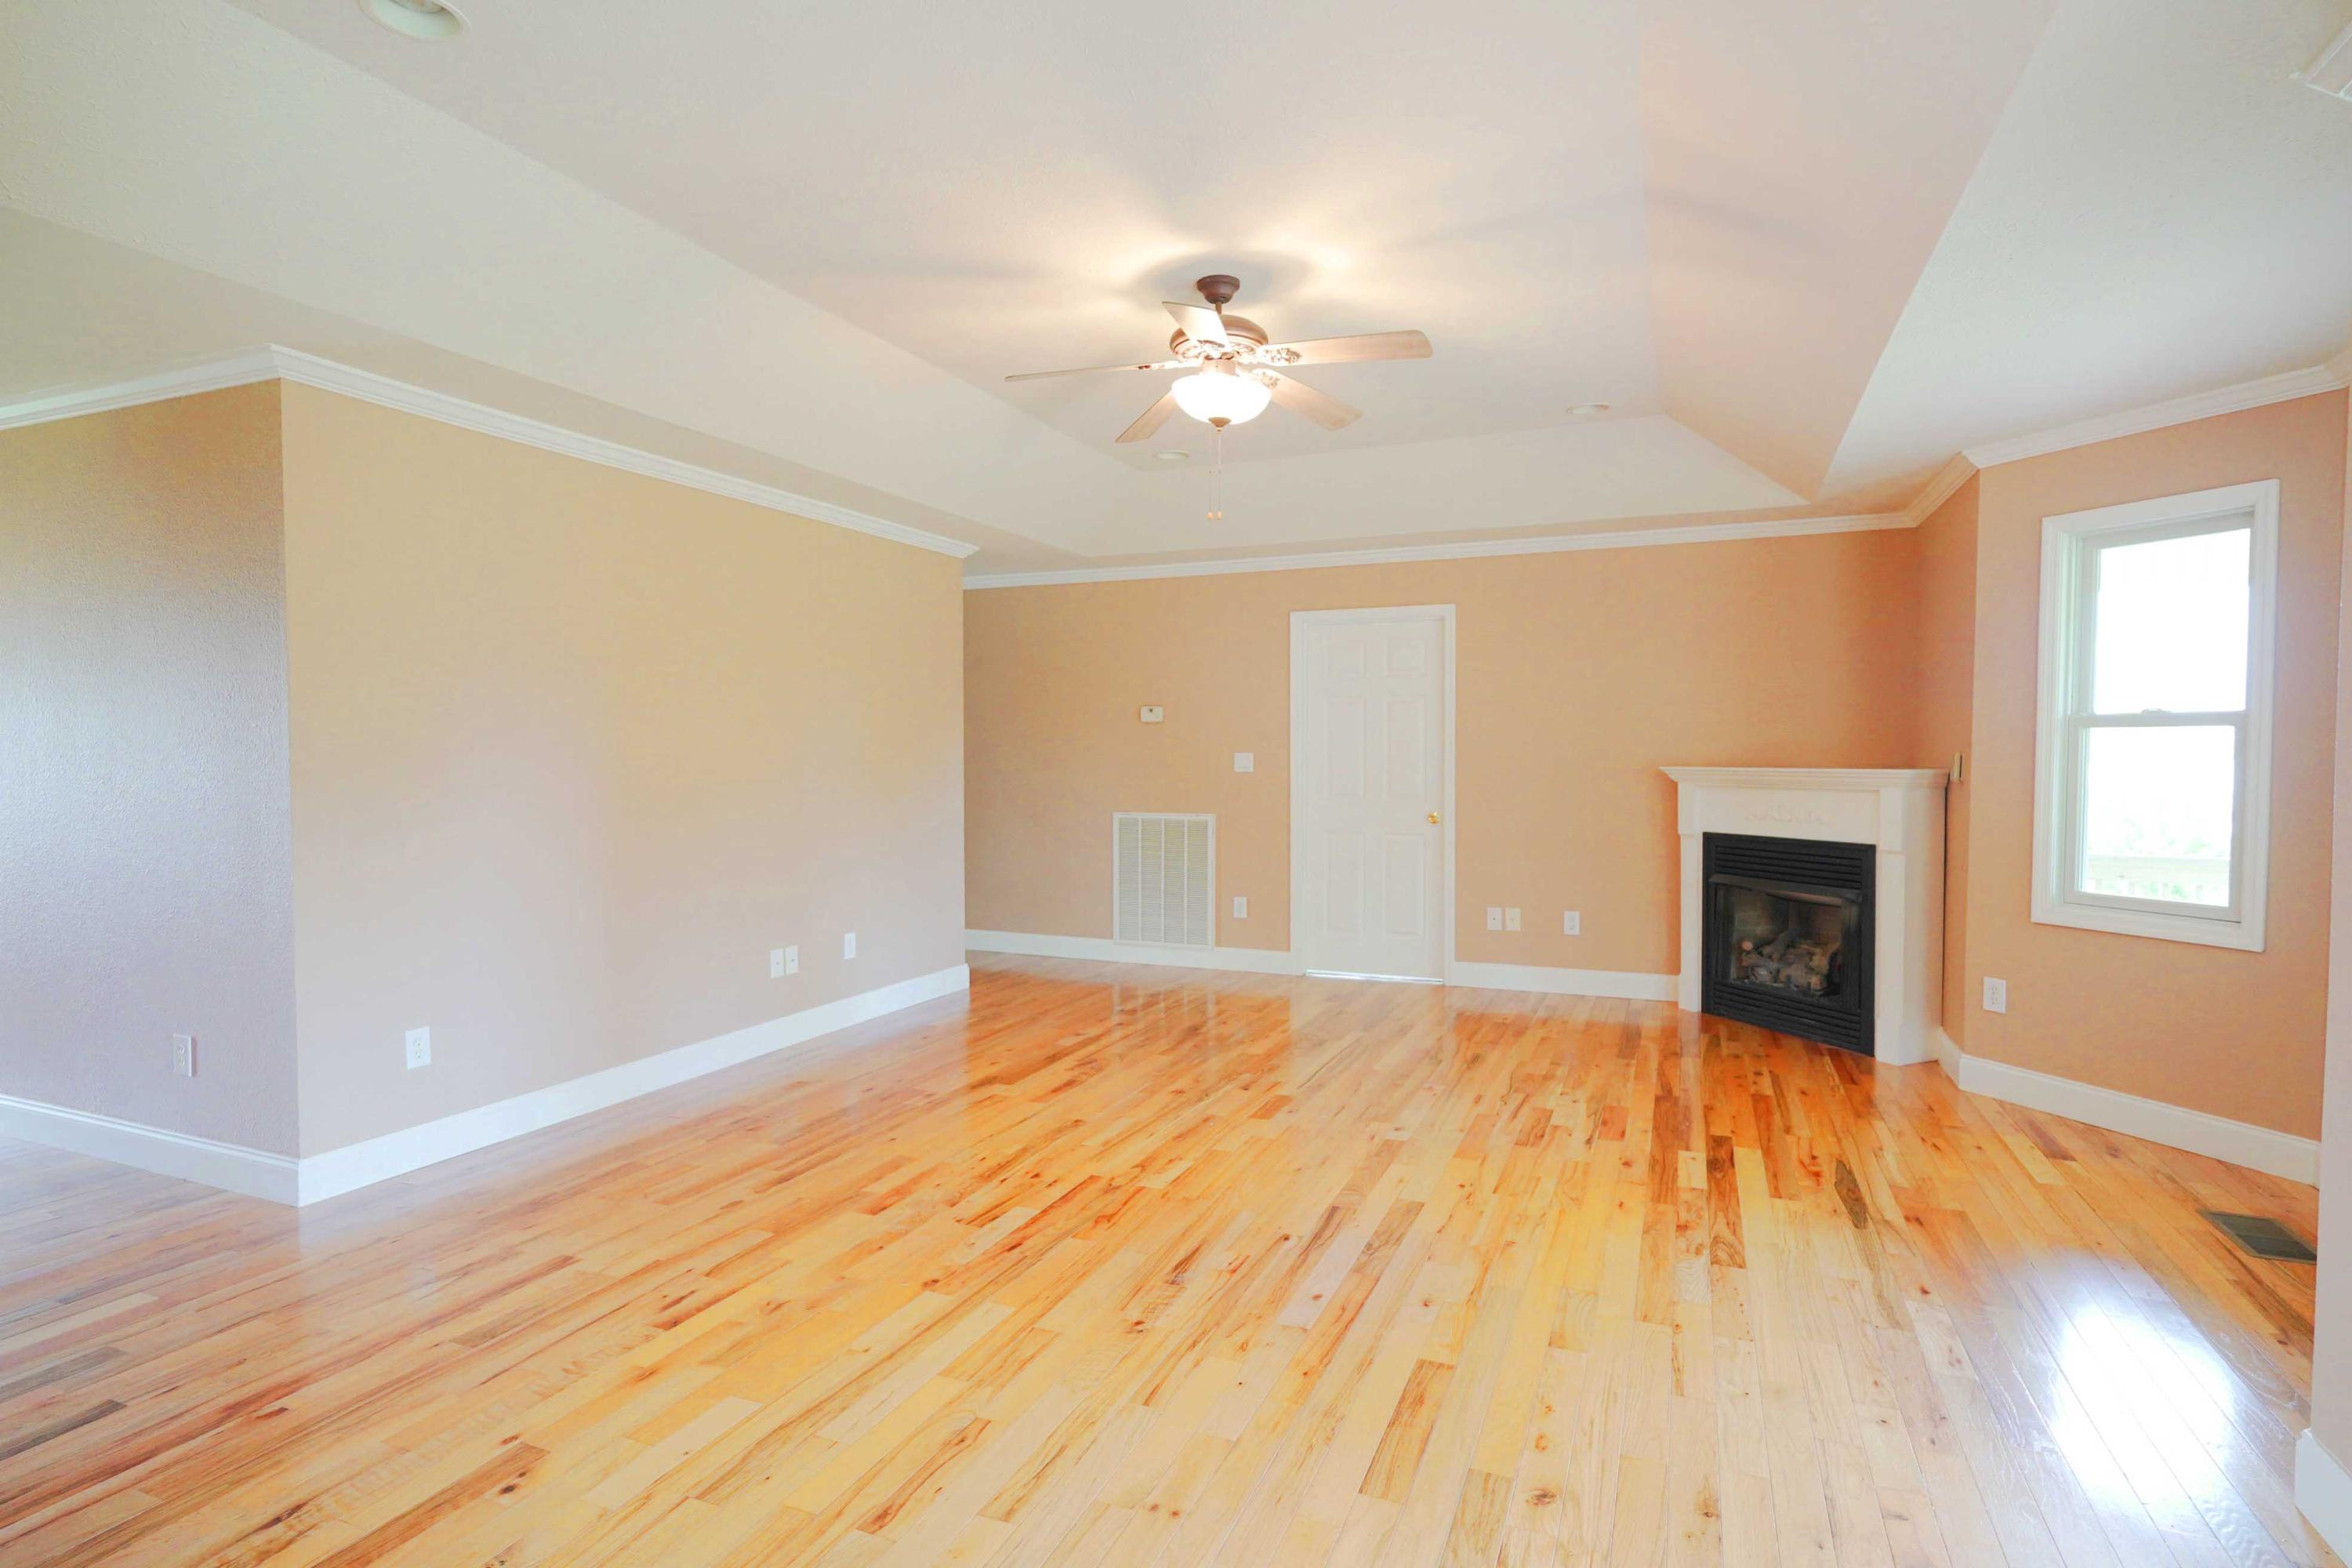 3179 Tn-39, Athens, Tennessee, United States 37303, 3 Bedrooms Bedrooms, ,4 BathroomsBathrooms,Single Family,For Sale,Tn-39,1125192